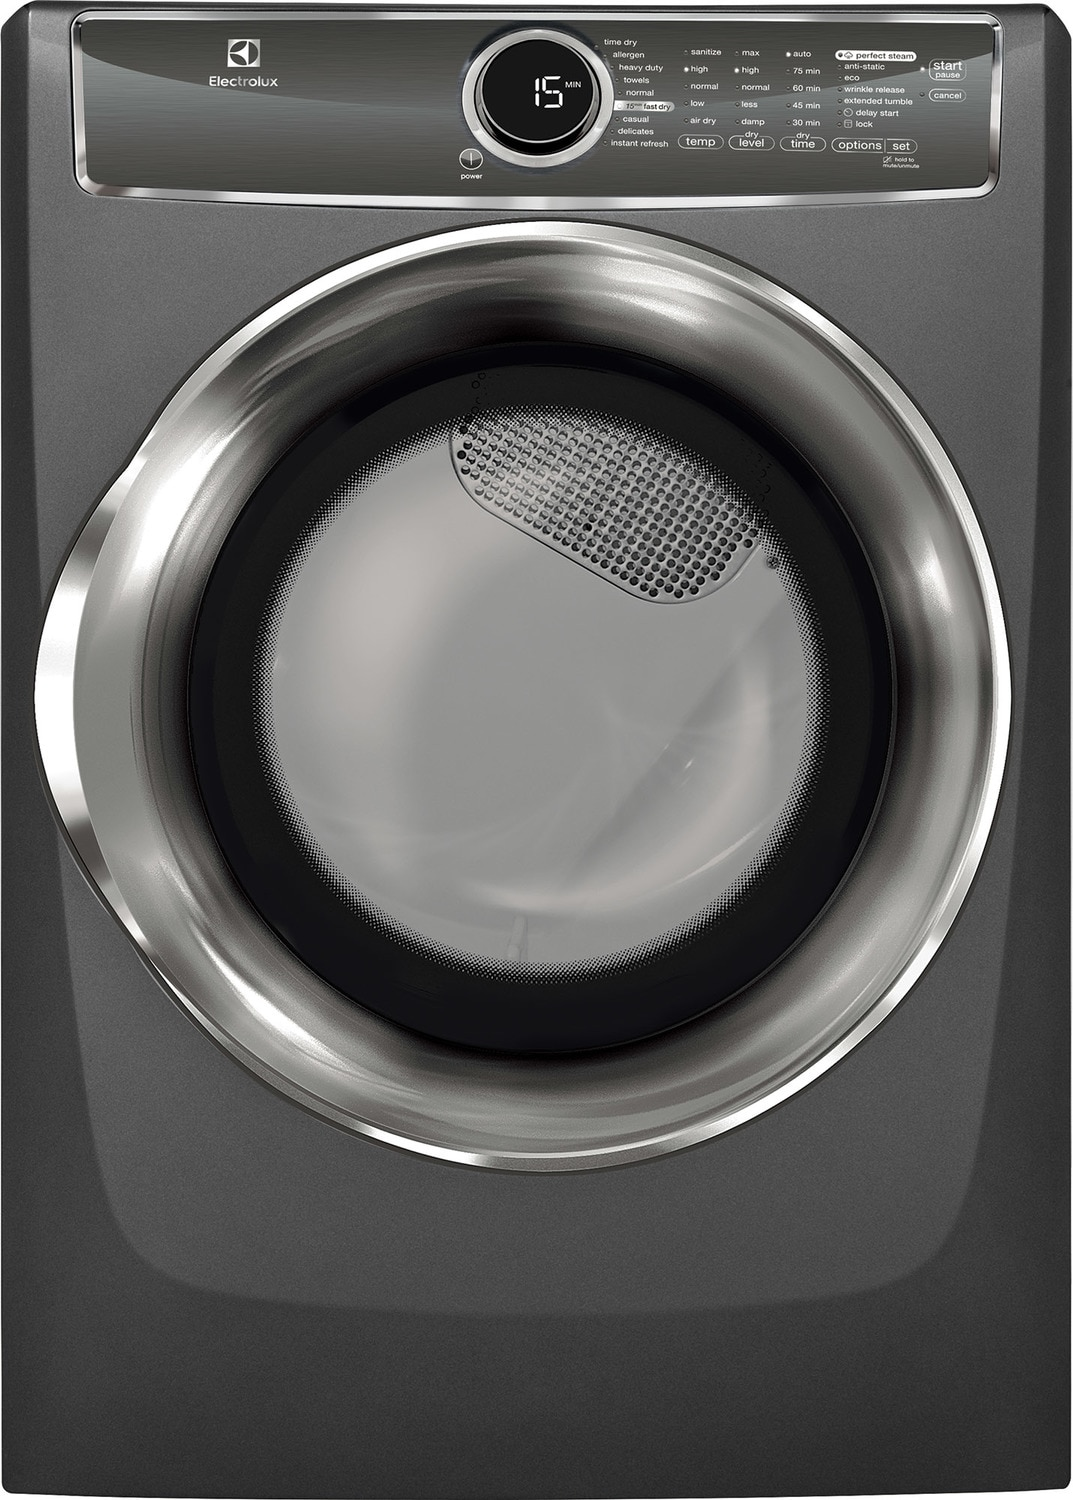 Electrolux Titanium Electric Dryer (8.0 Cu. Ft.) - EFMC617STT